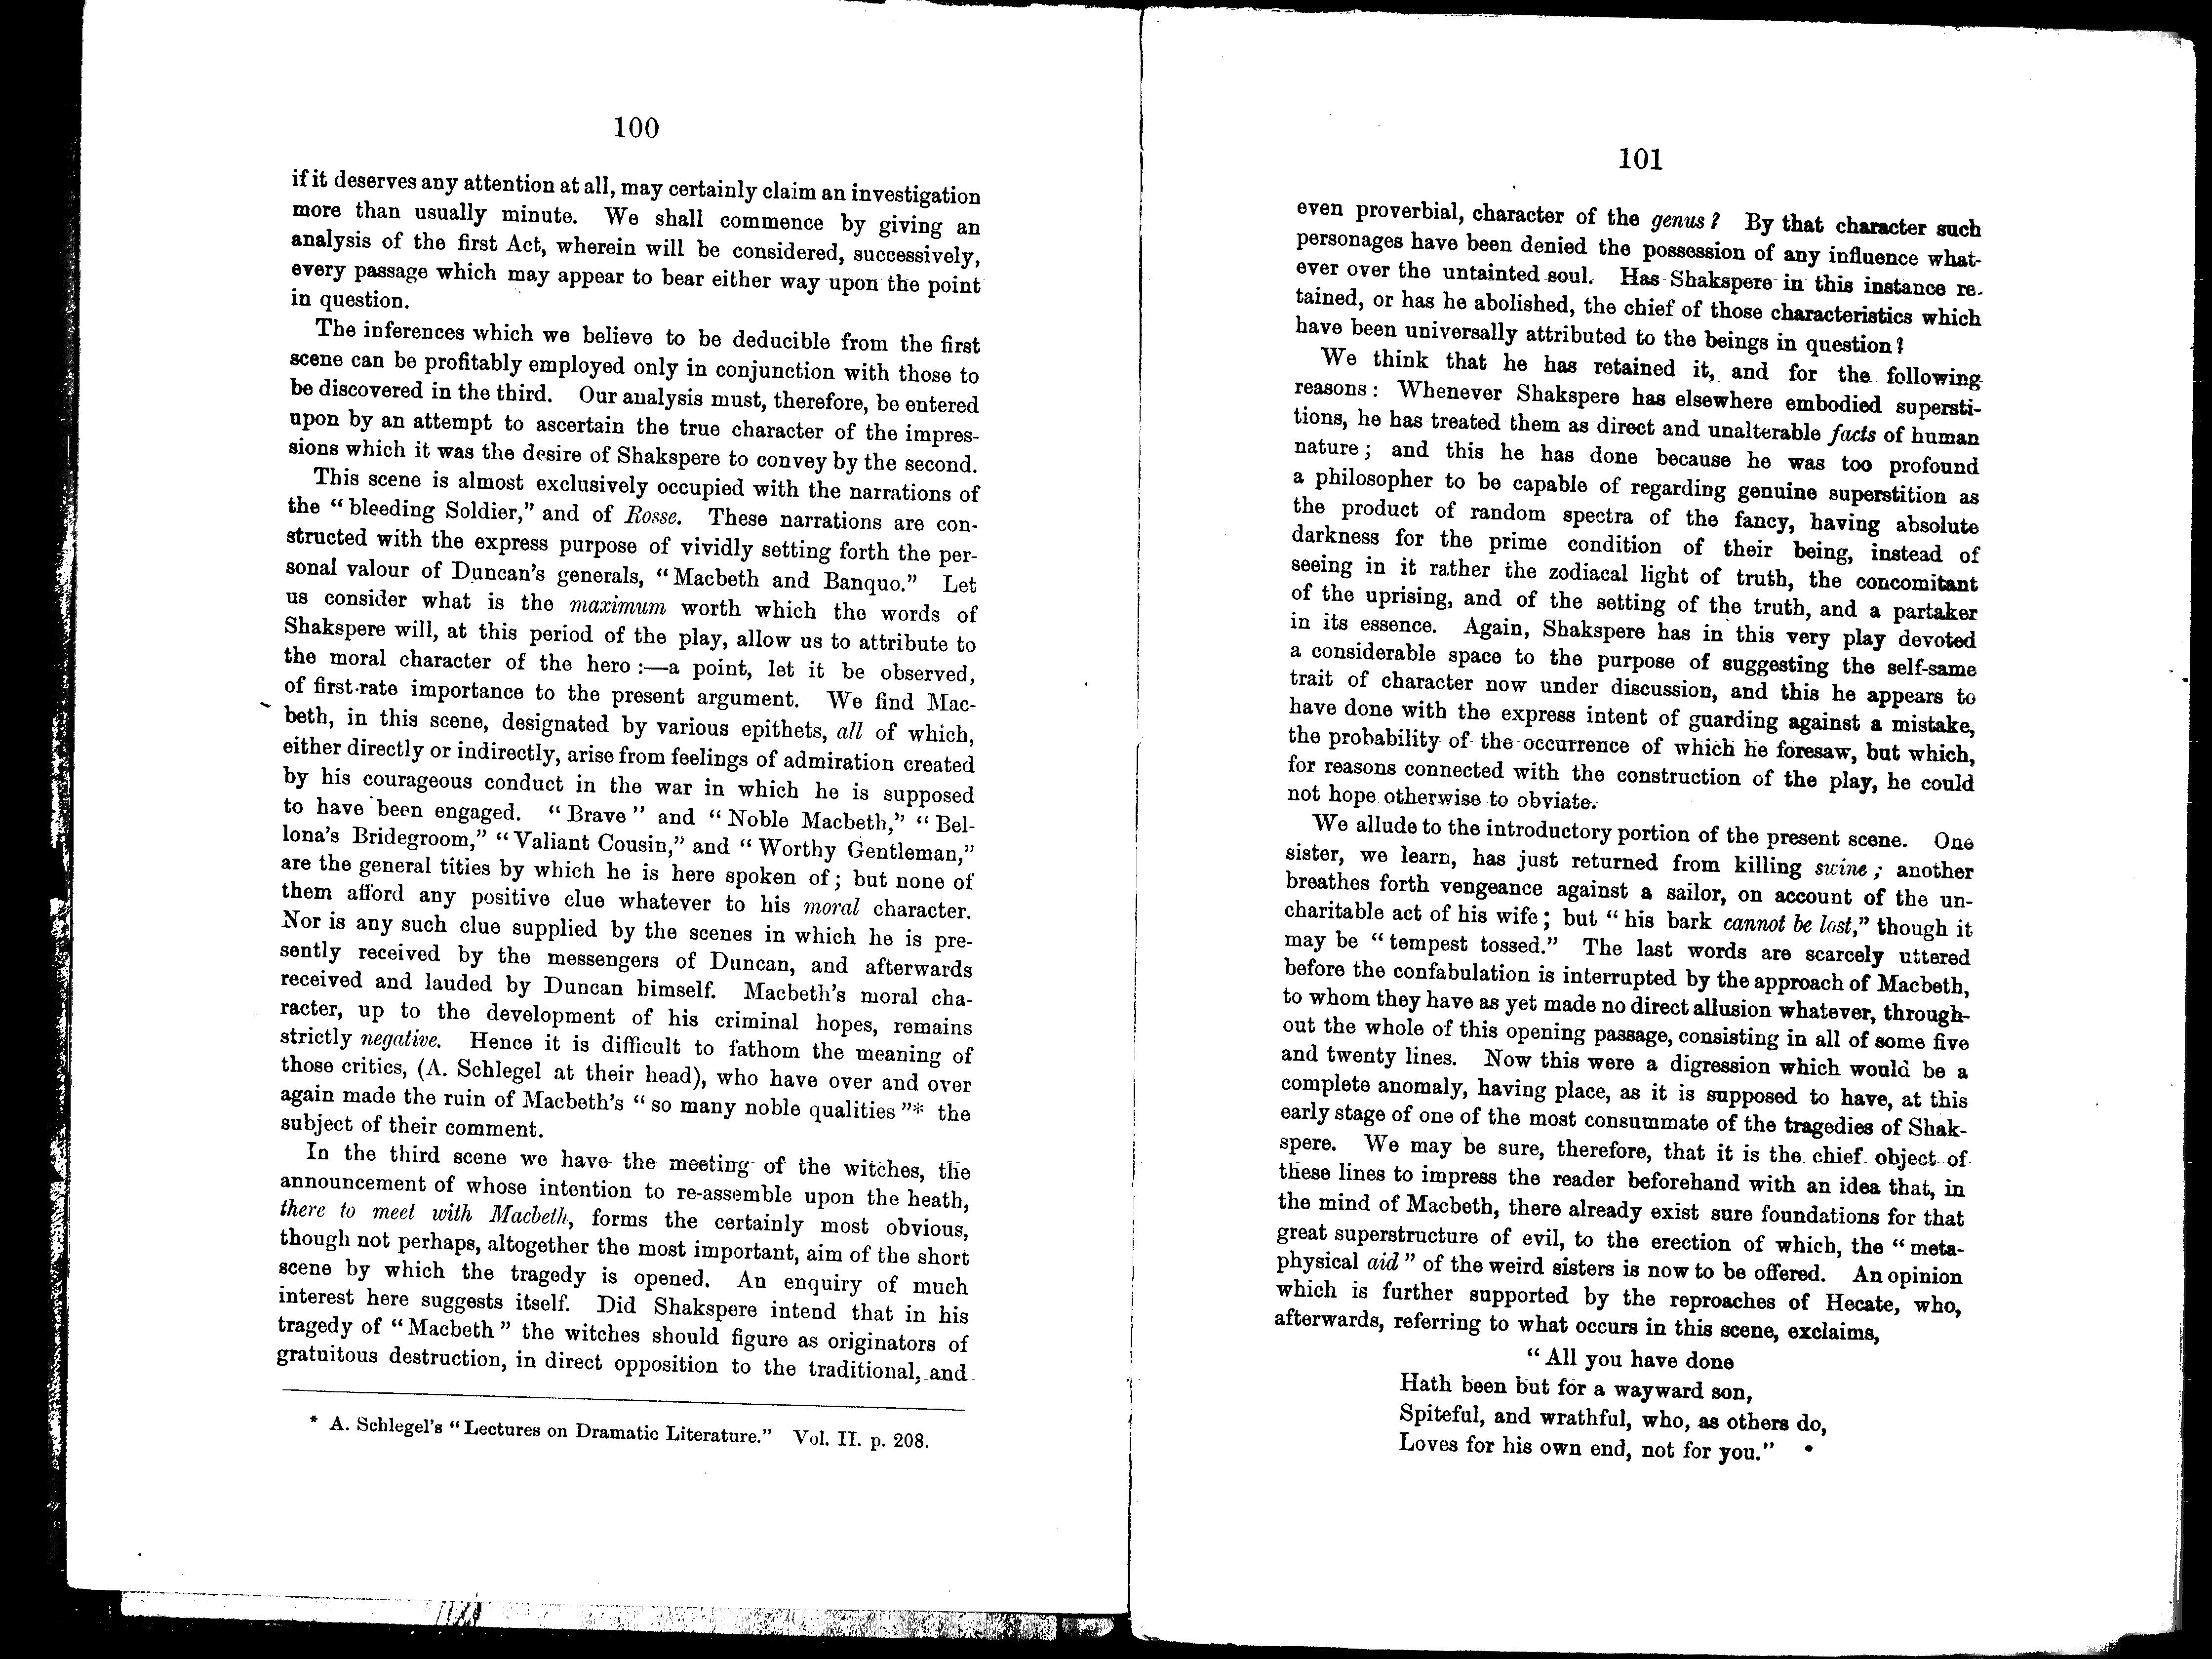 an analysis of character sketch of banquo of the kings army Character sketch of banquo of the king's army banquo is a general of the kings army he has a young son named fleance, who seems to be an early teenager, evident from his picture on page 14.